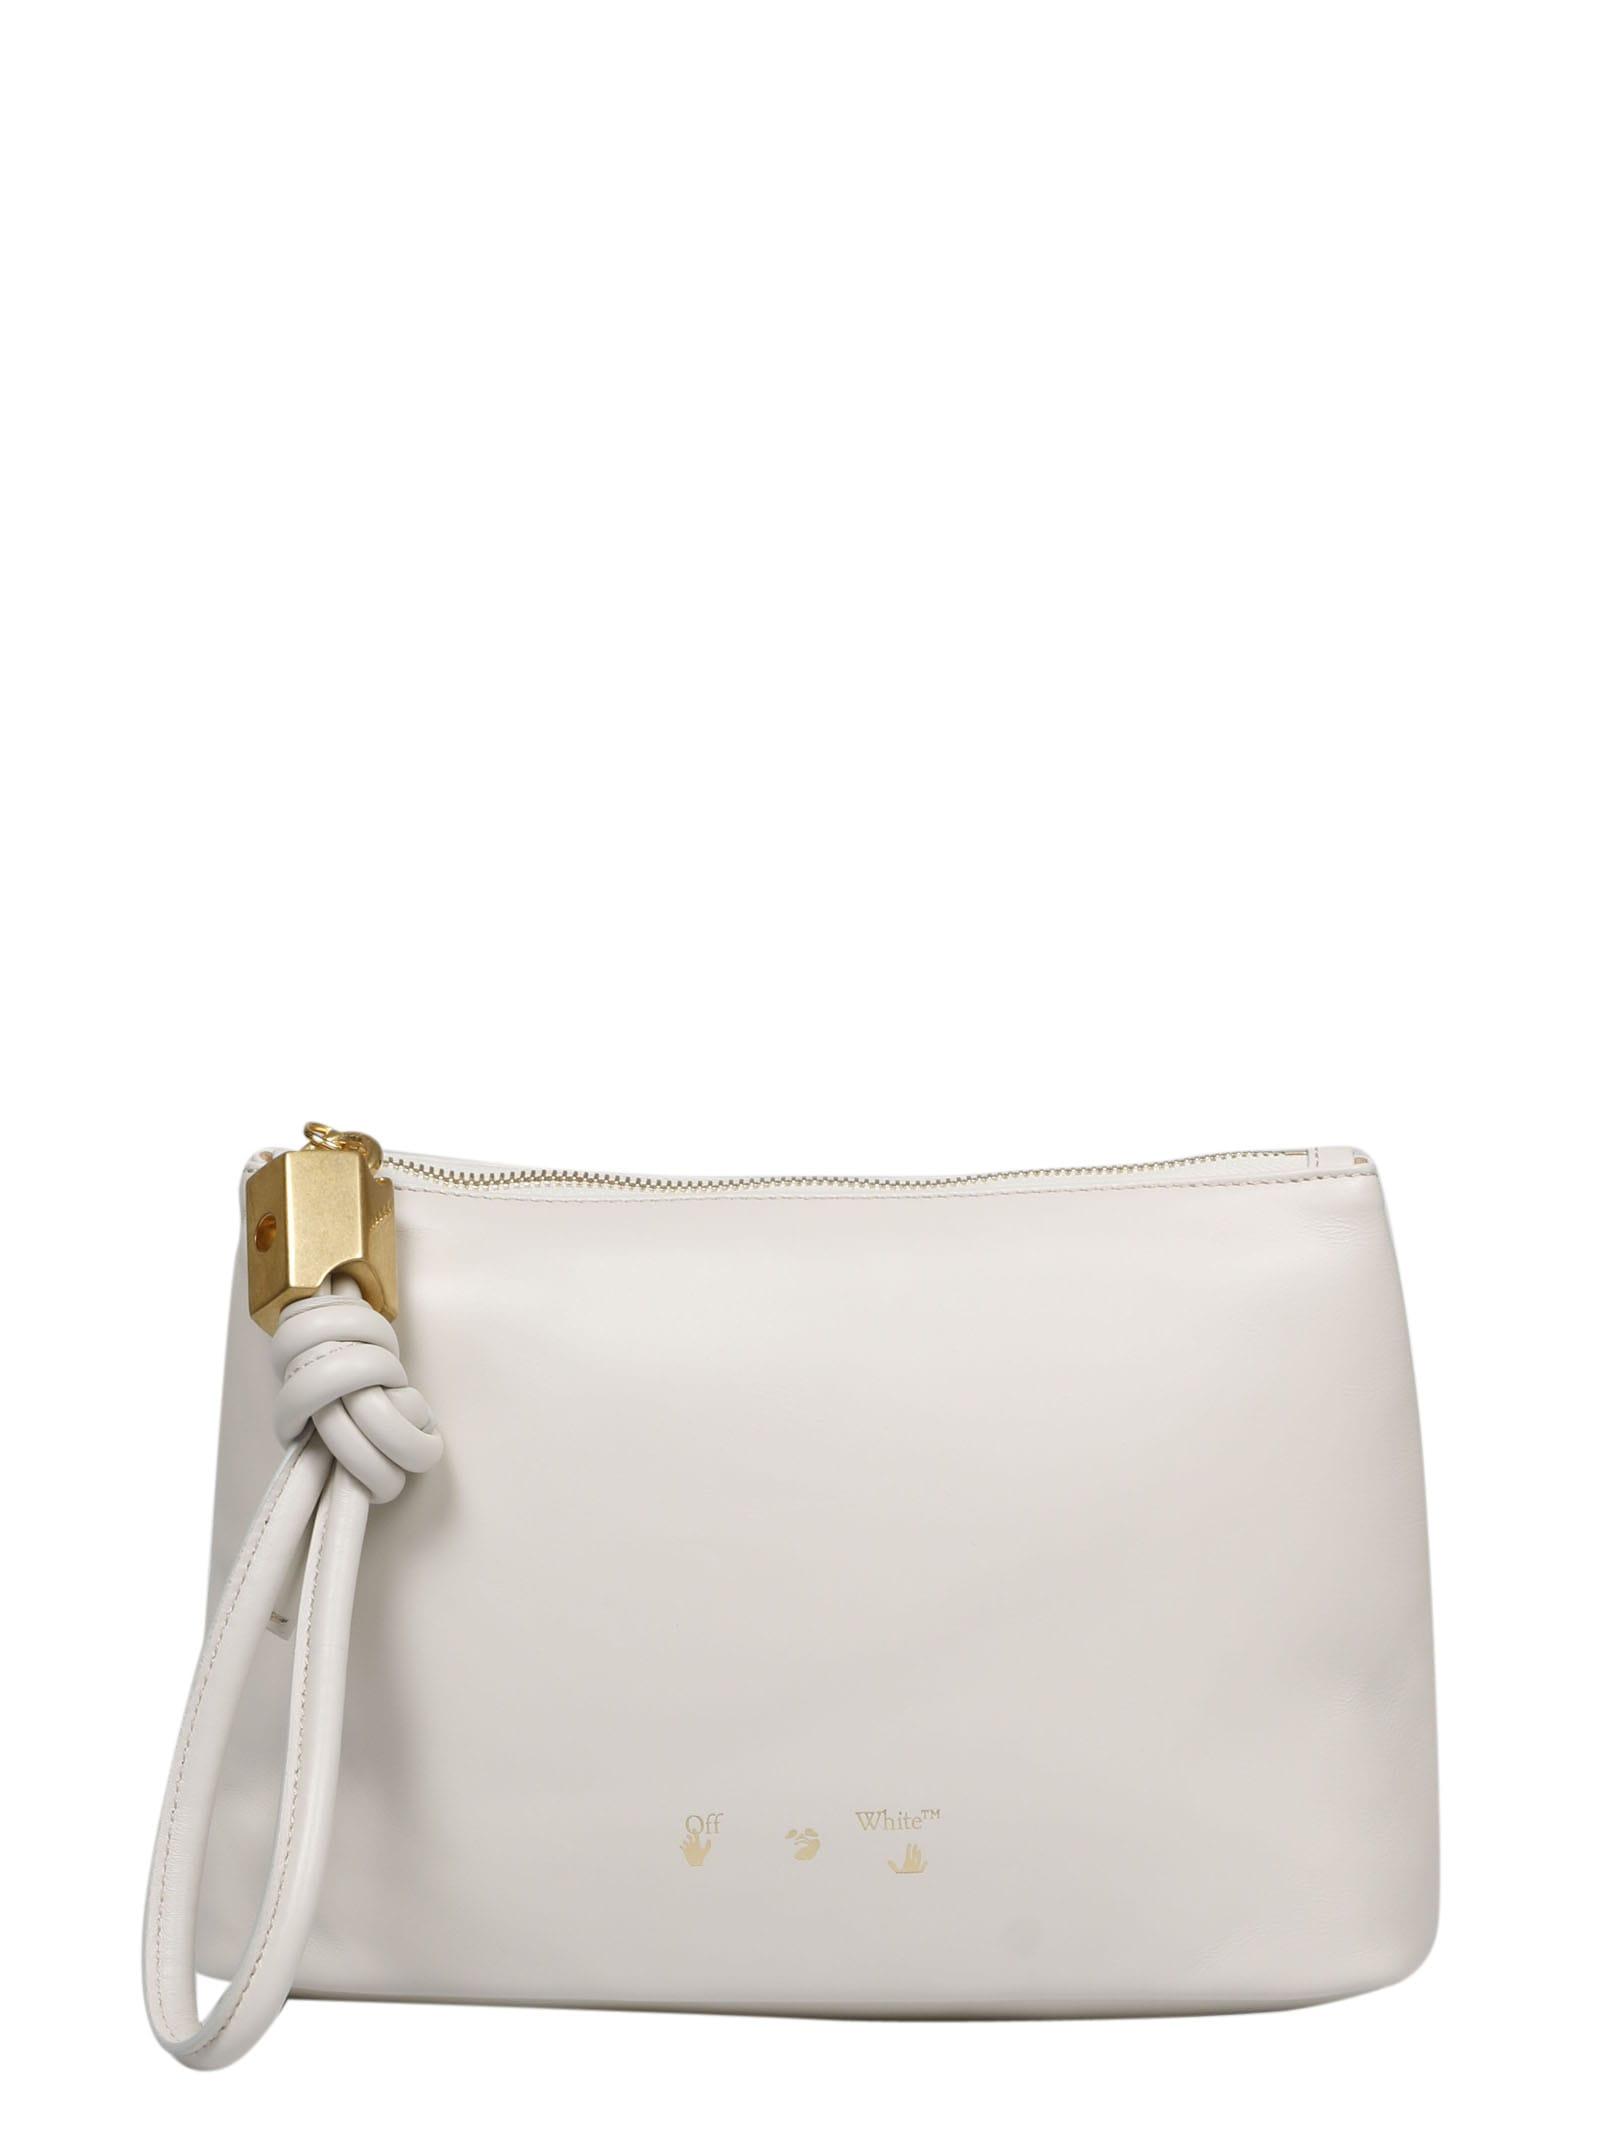 Off-White Slider Zipped Pouch